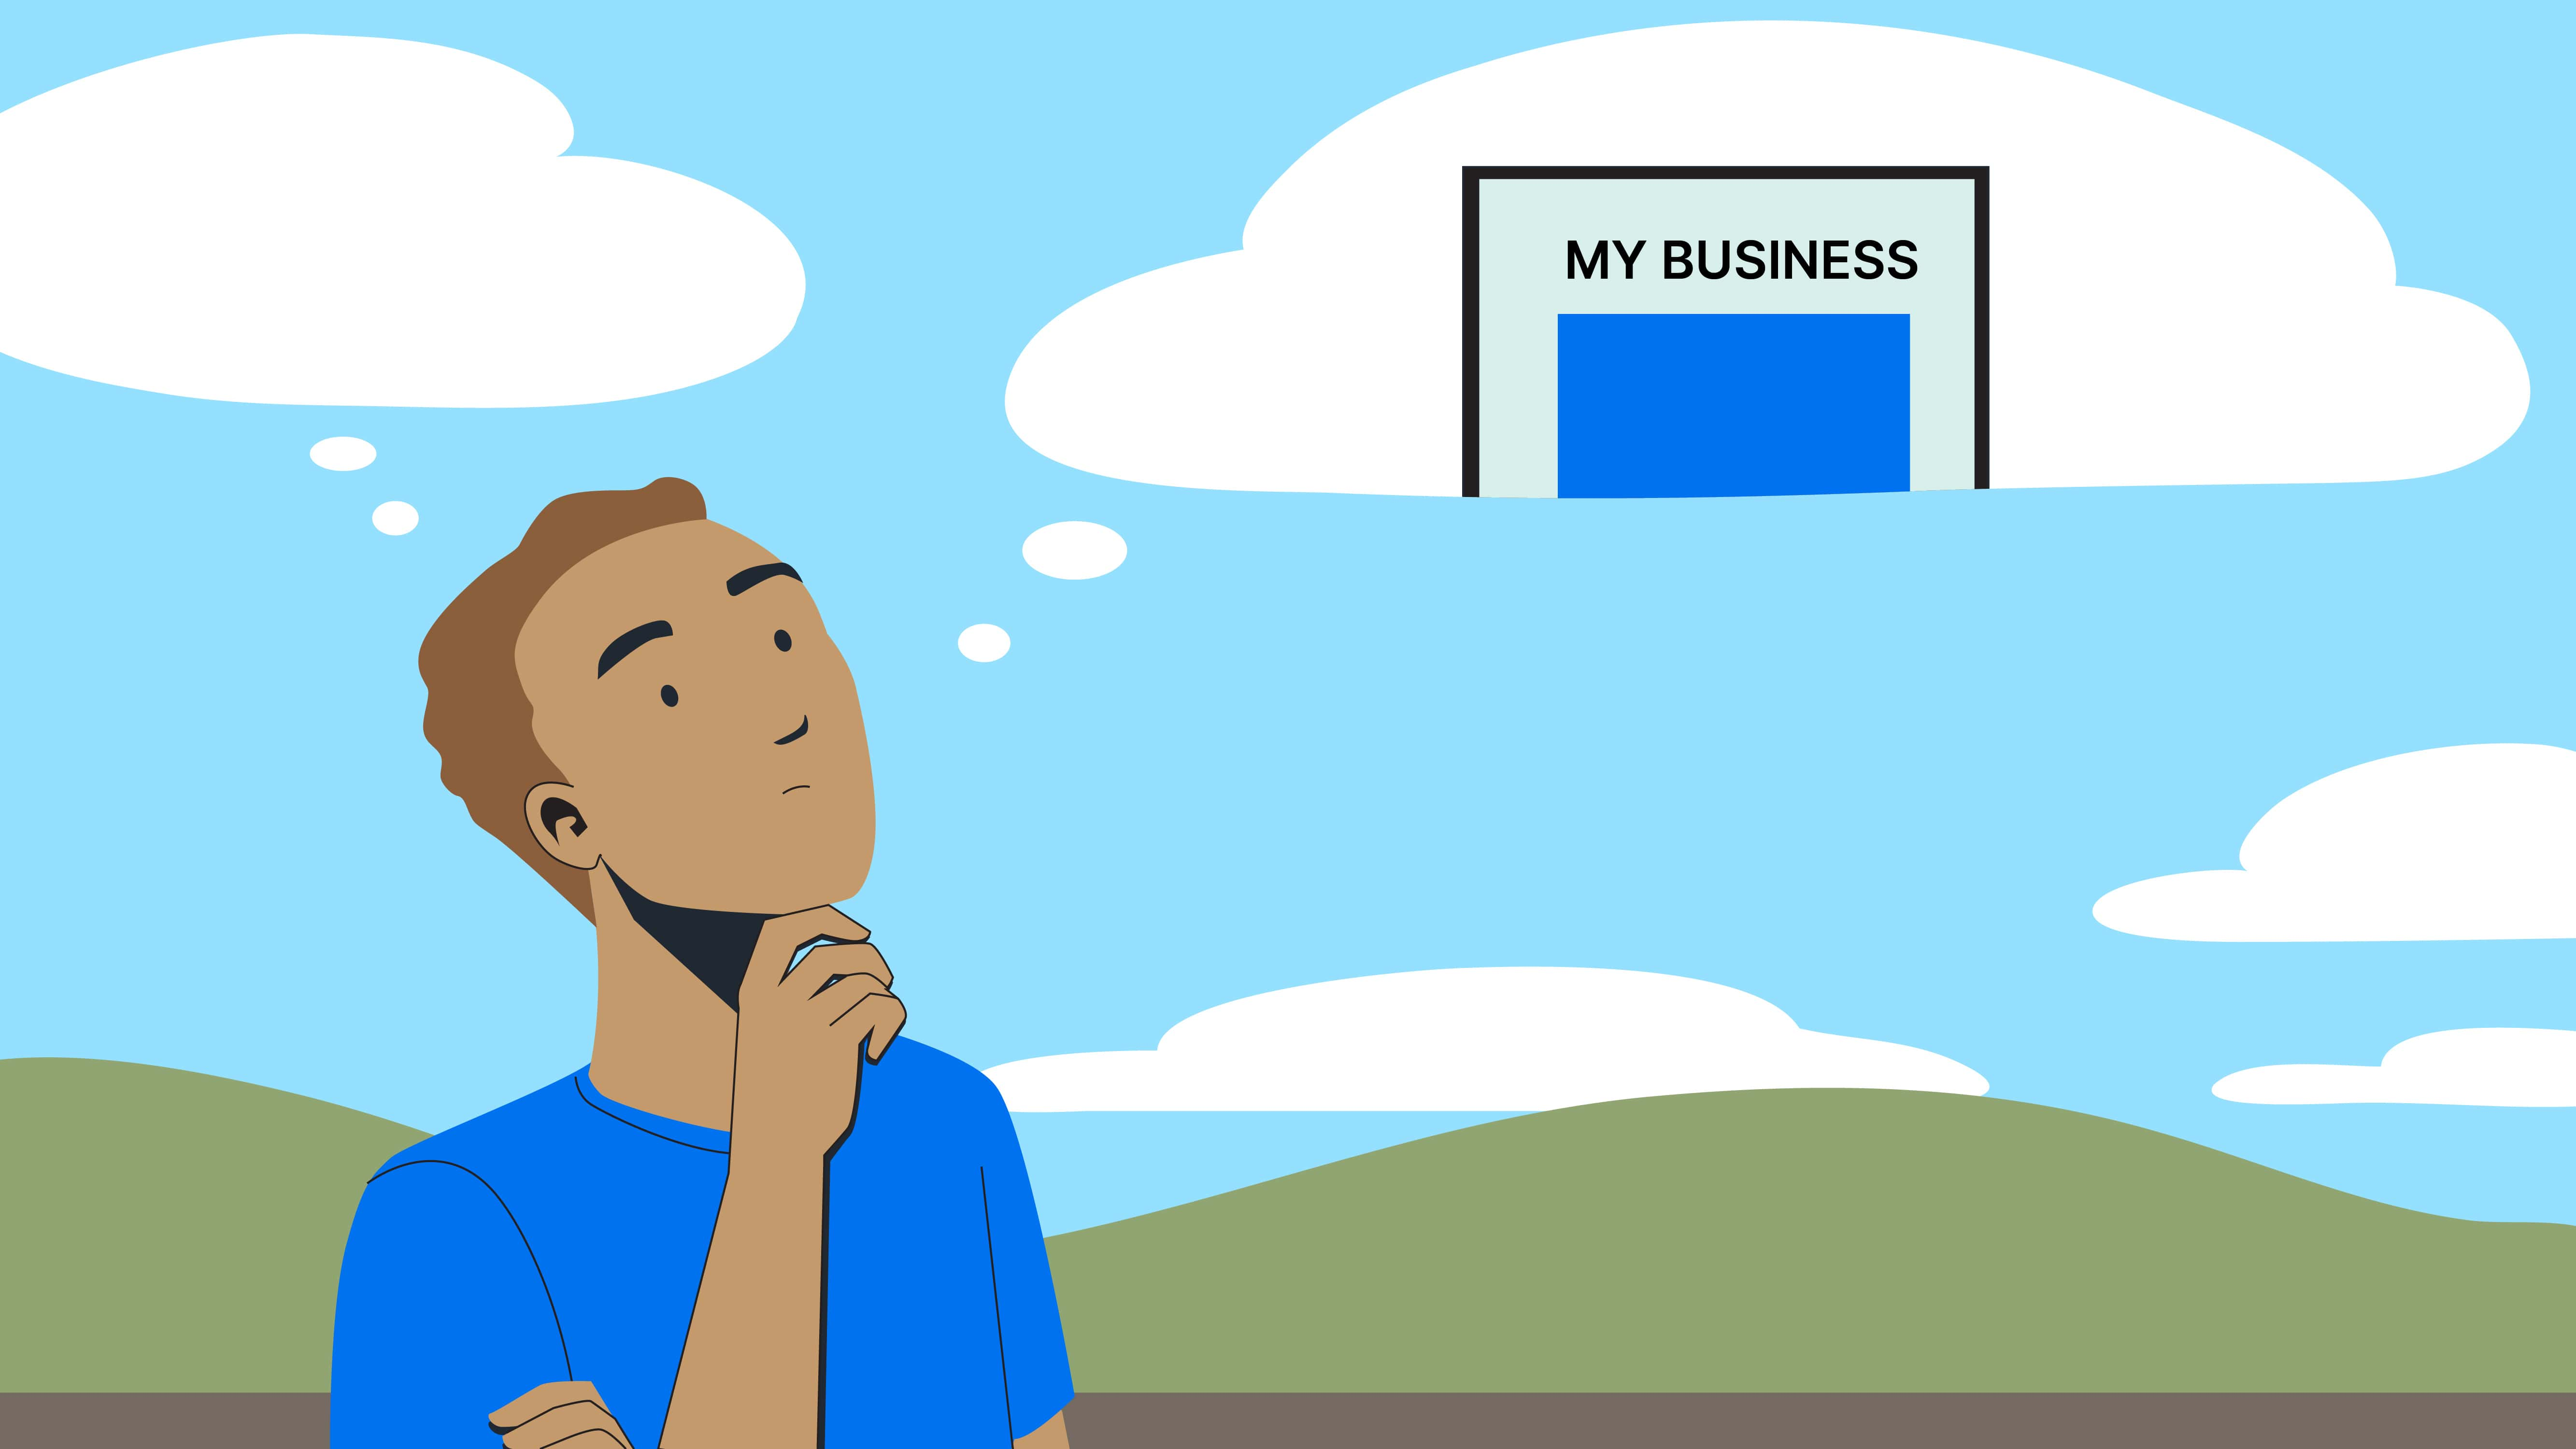 9 questions to ask yourself before opening an online business